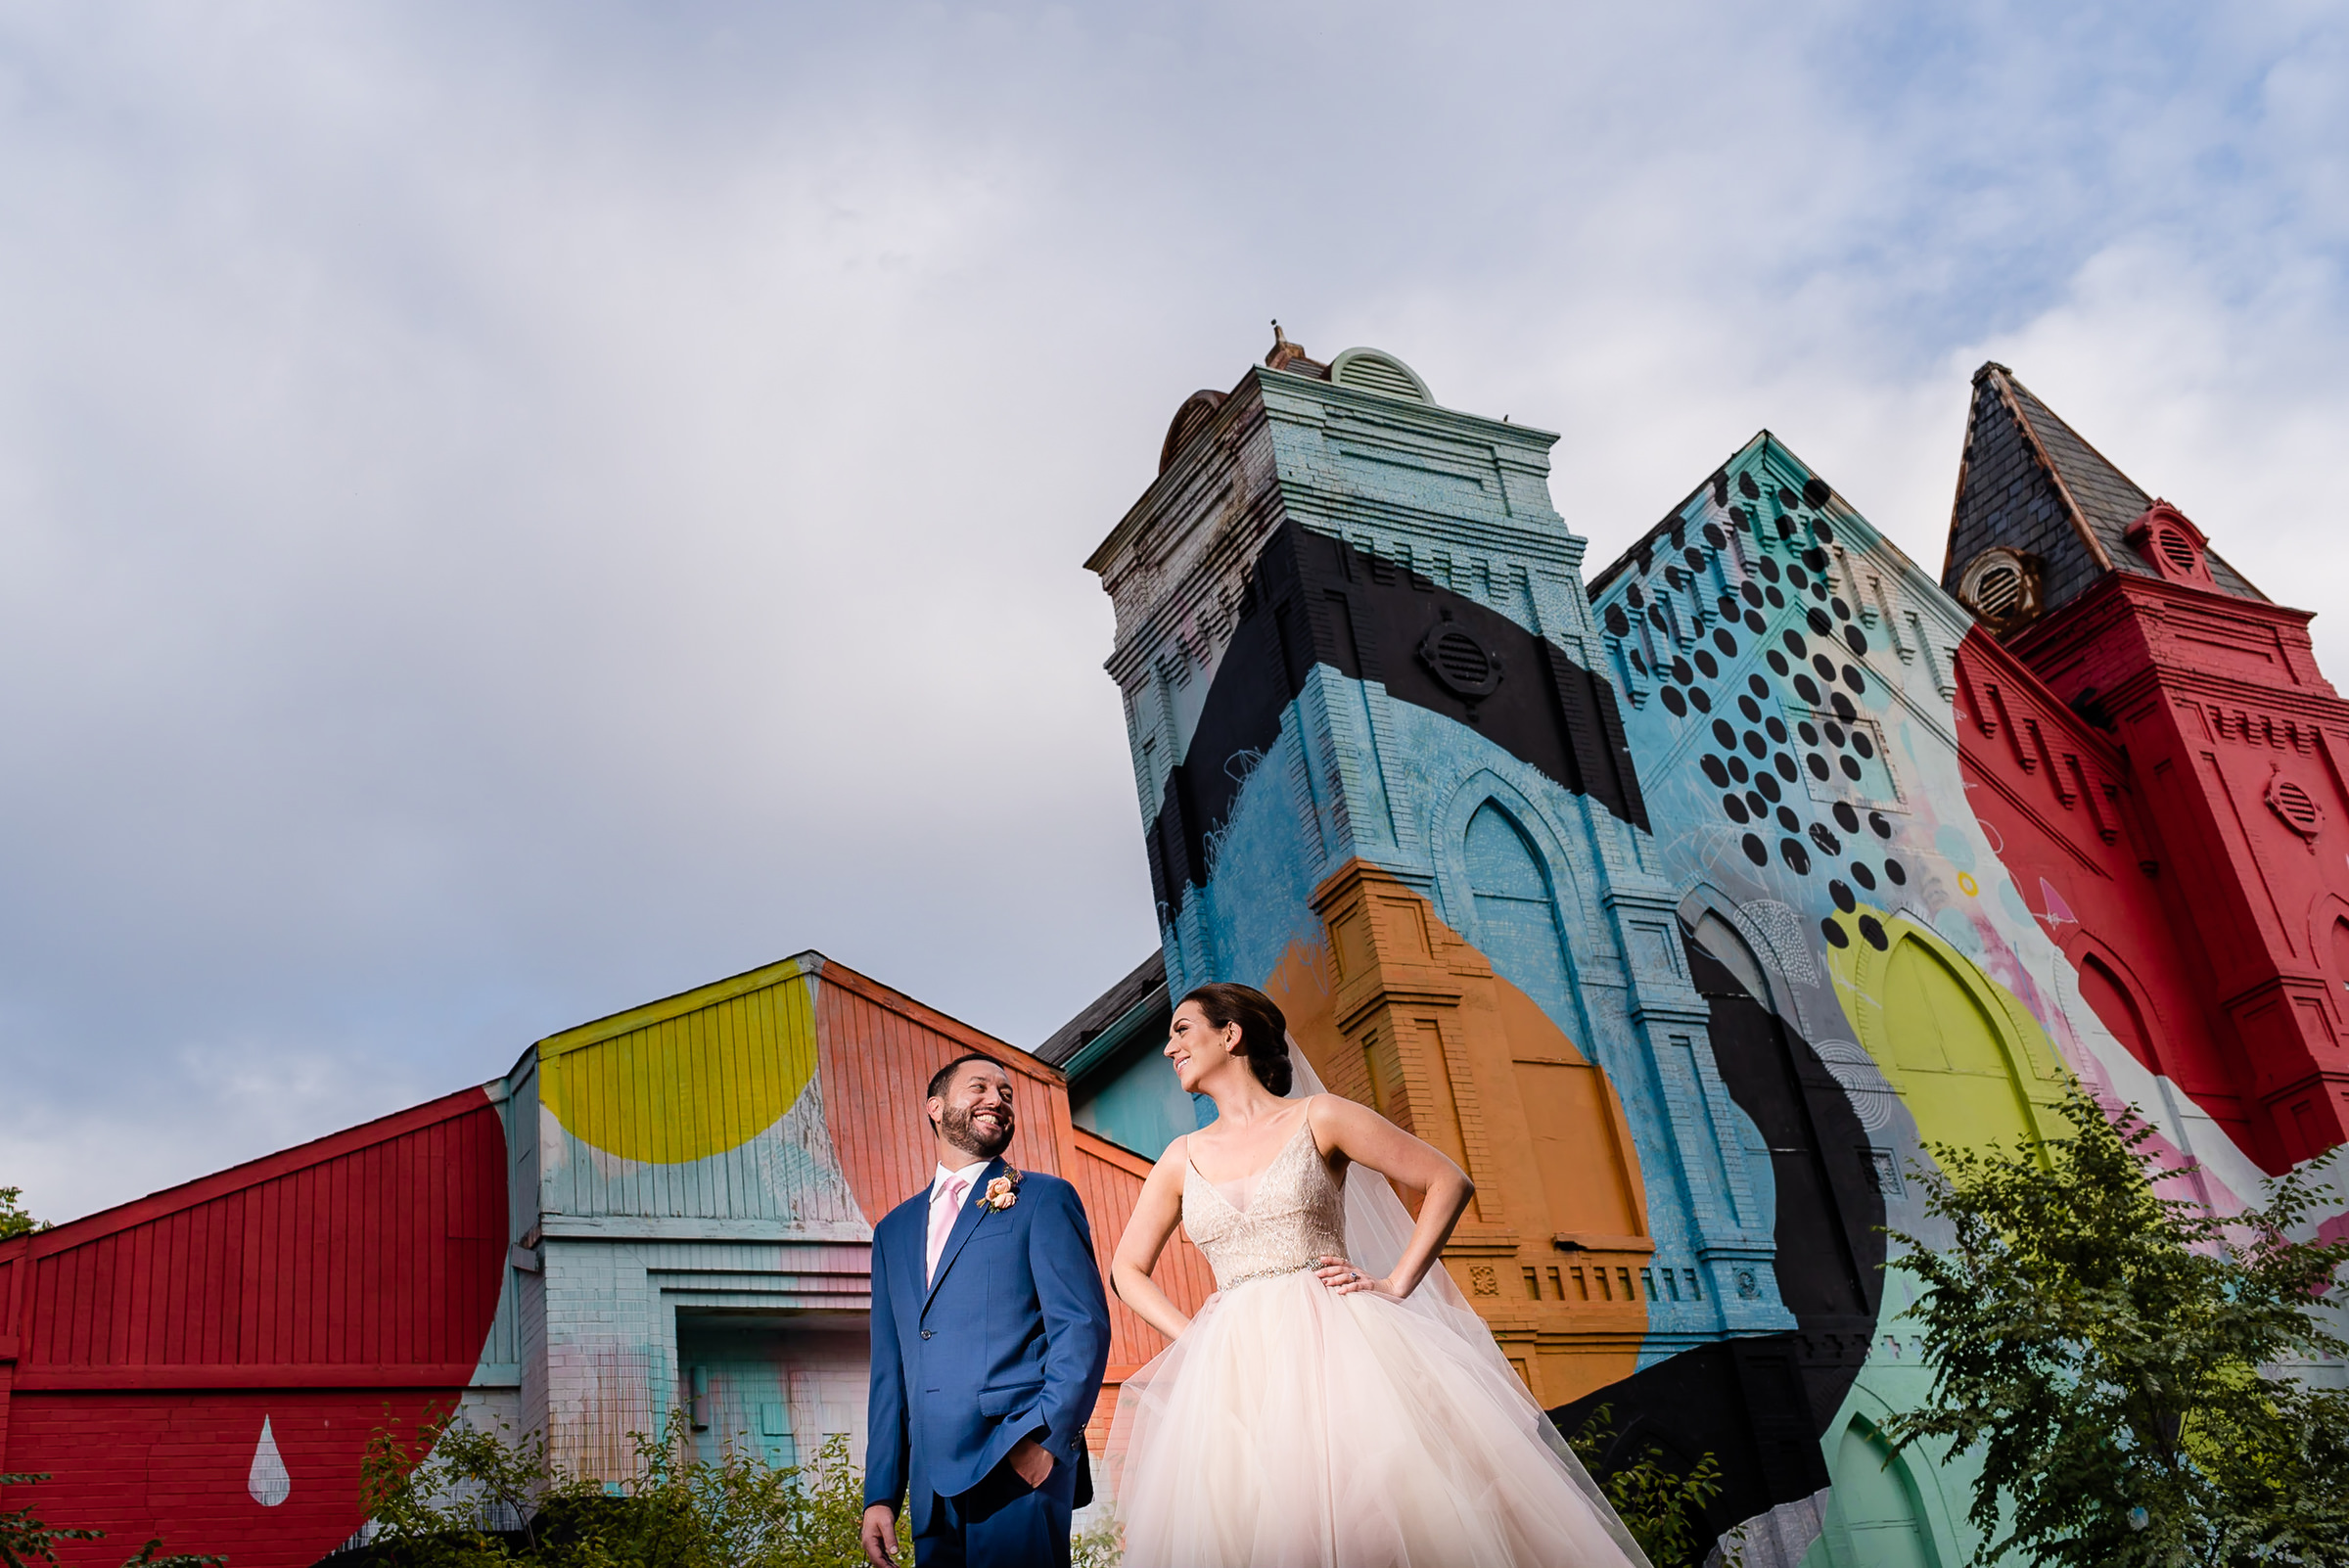 Couple against colorful culture house - photo by Kirth Bobb Photography